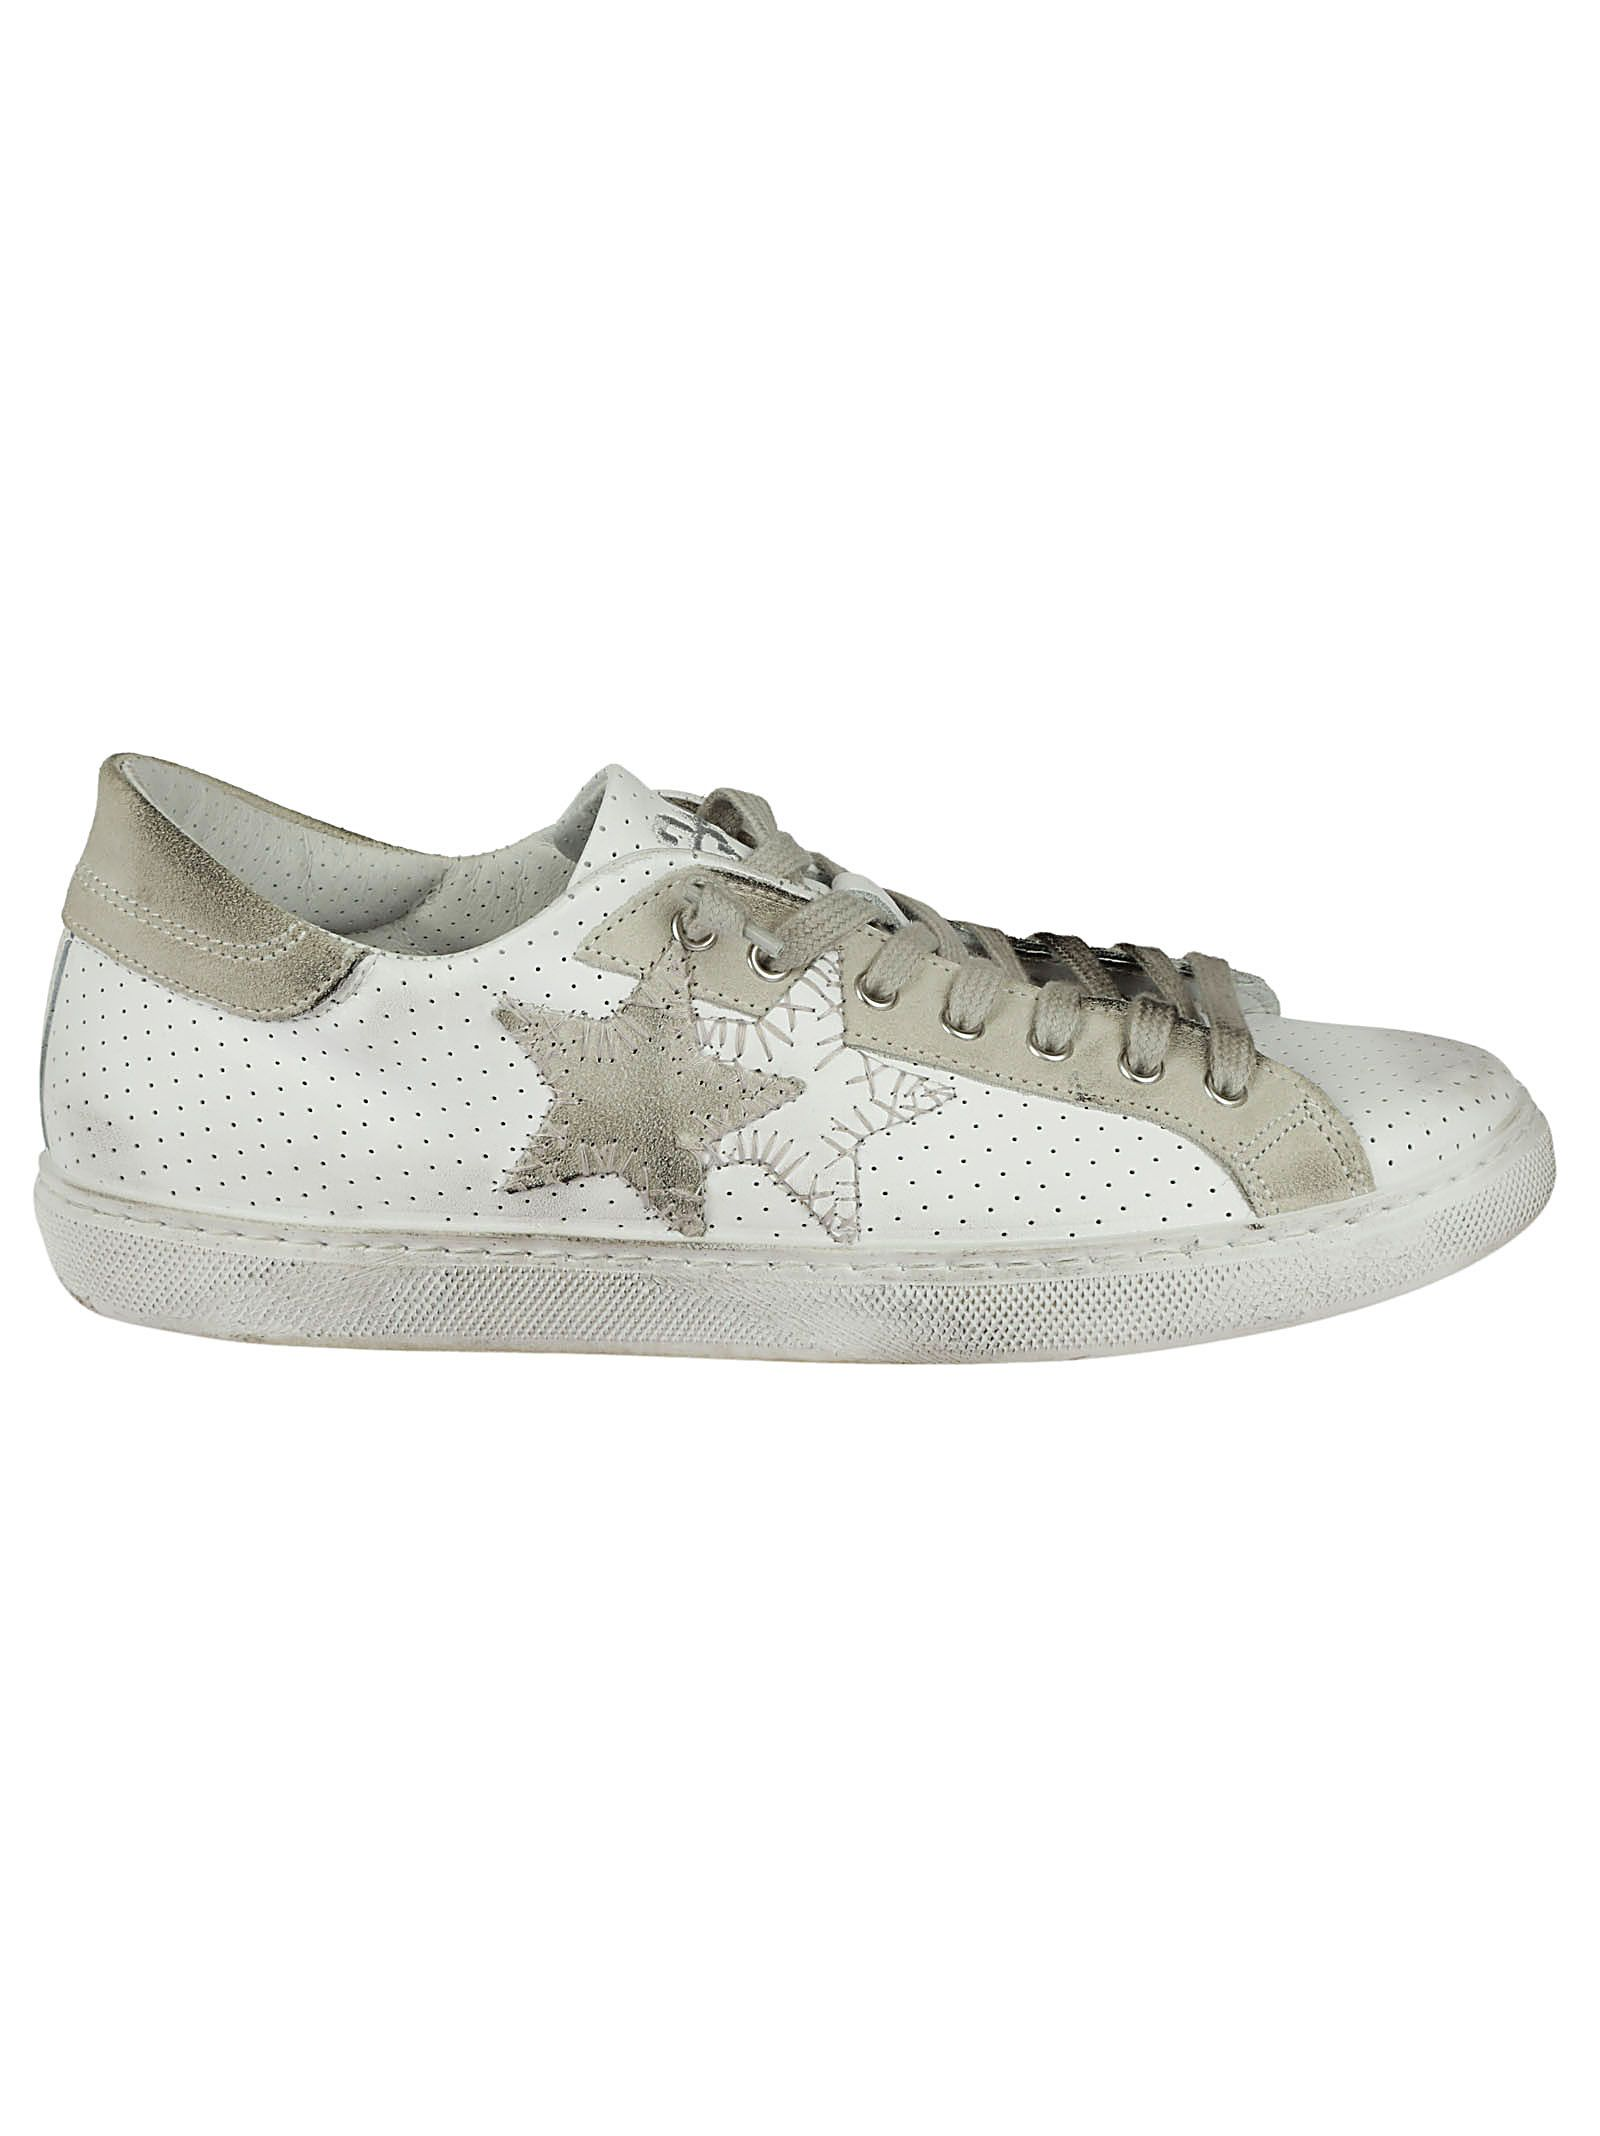 2star male 2 star low ice sneakers